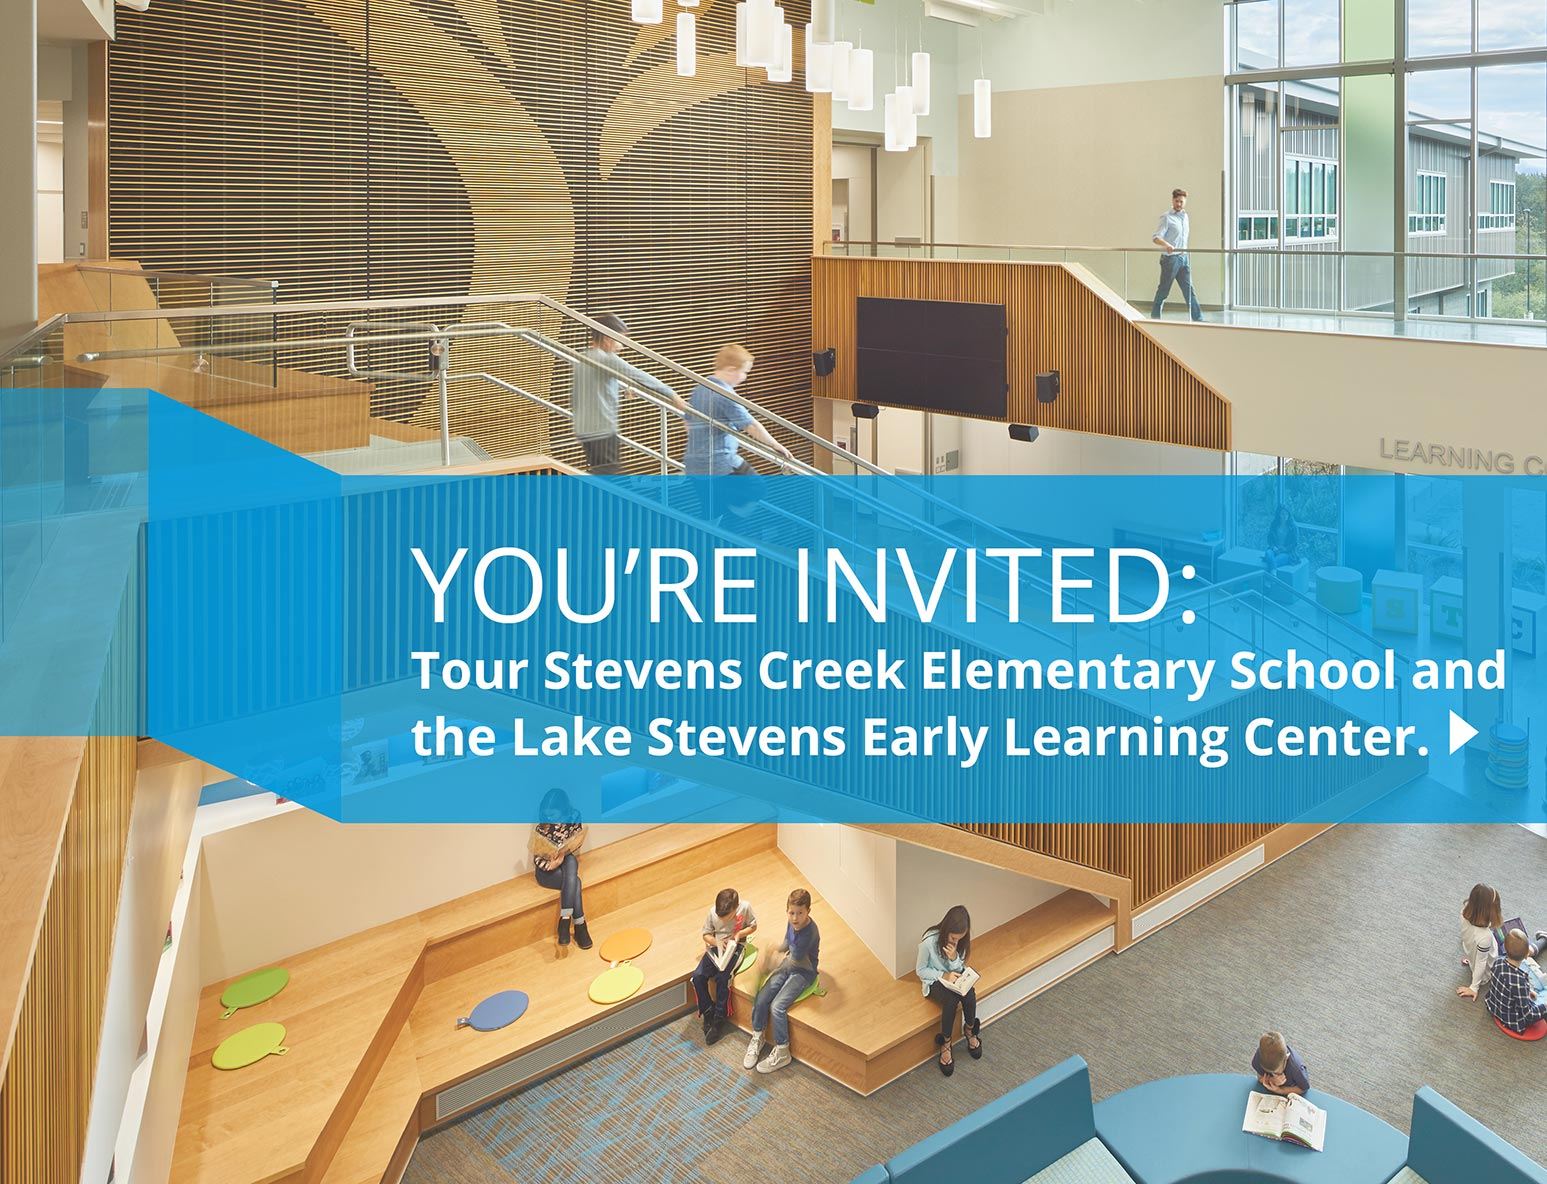 Stevens Creek Elementary School, You're invited: Tour Stevens Creek Elementary School and the Lake Stevens Early Learning Center, link to video tour